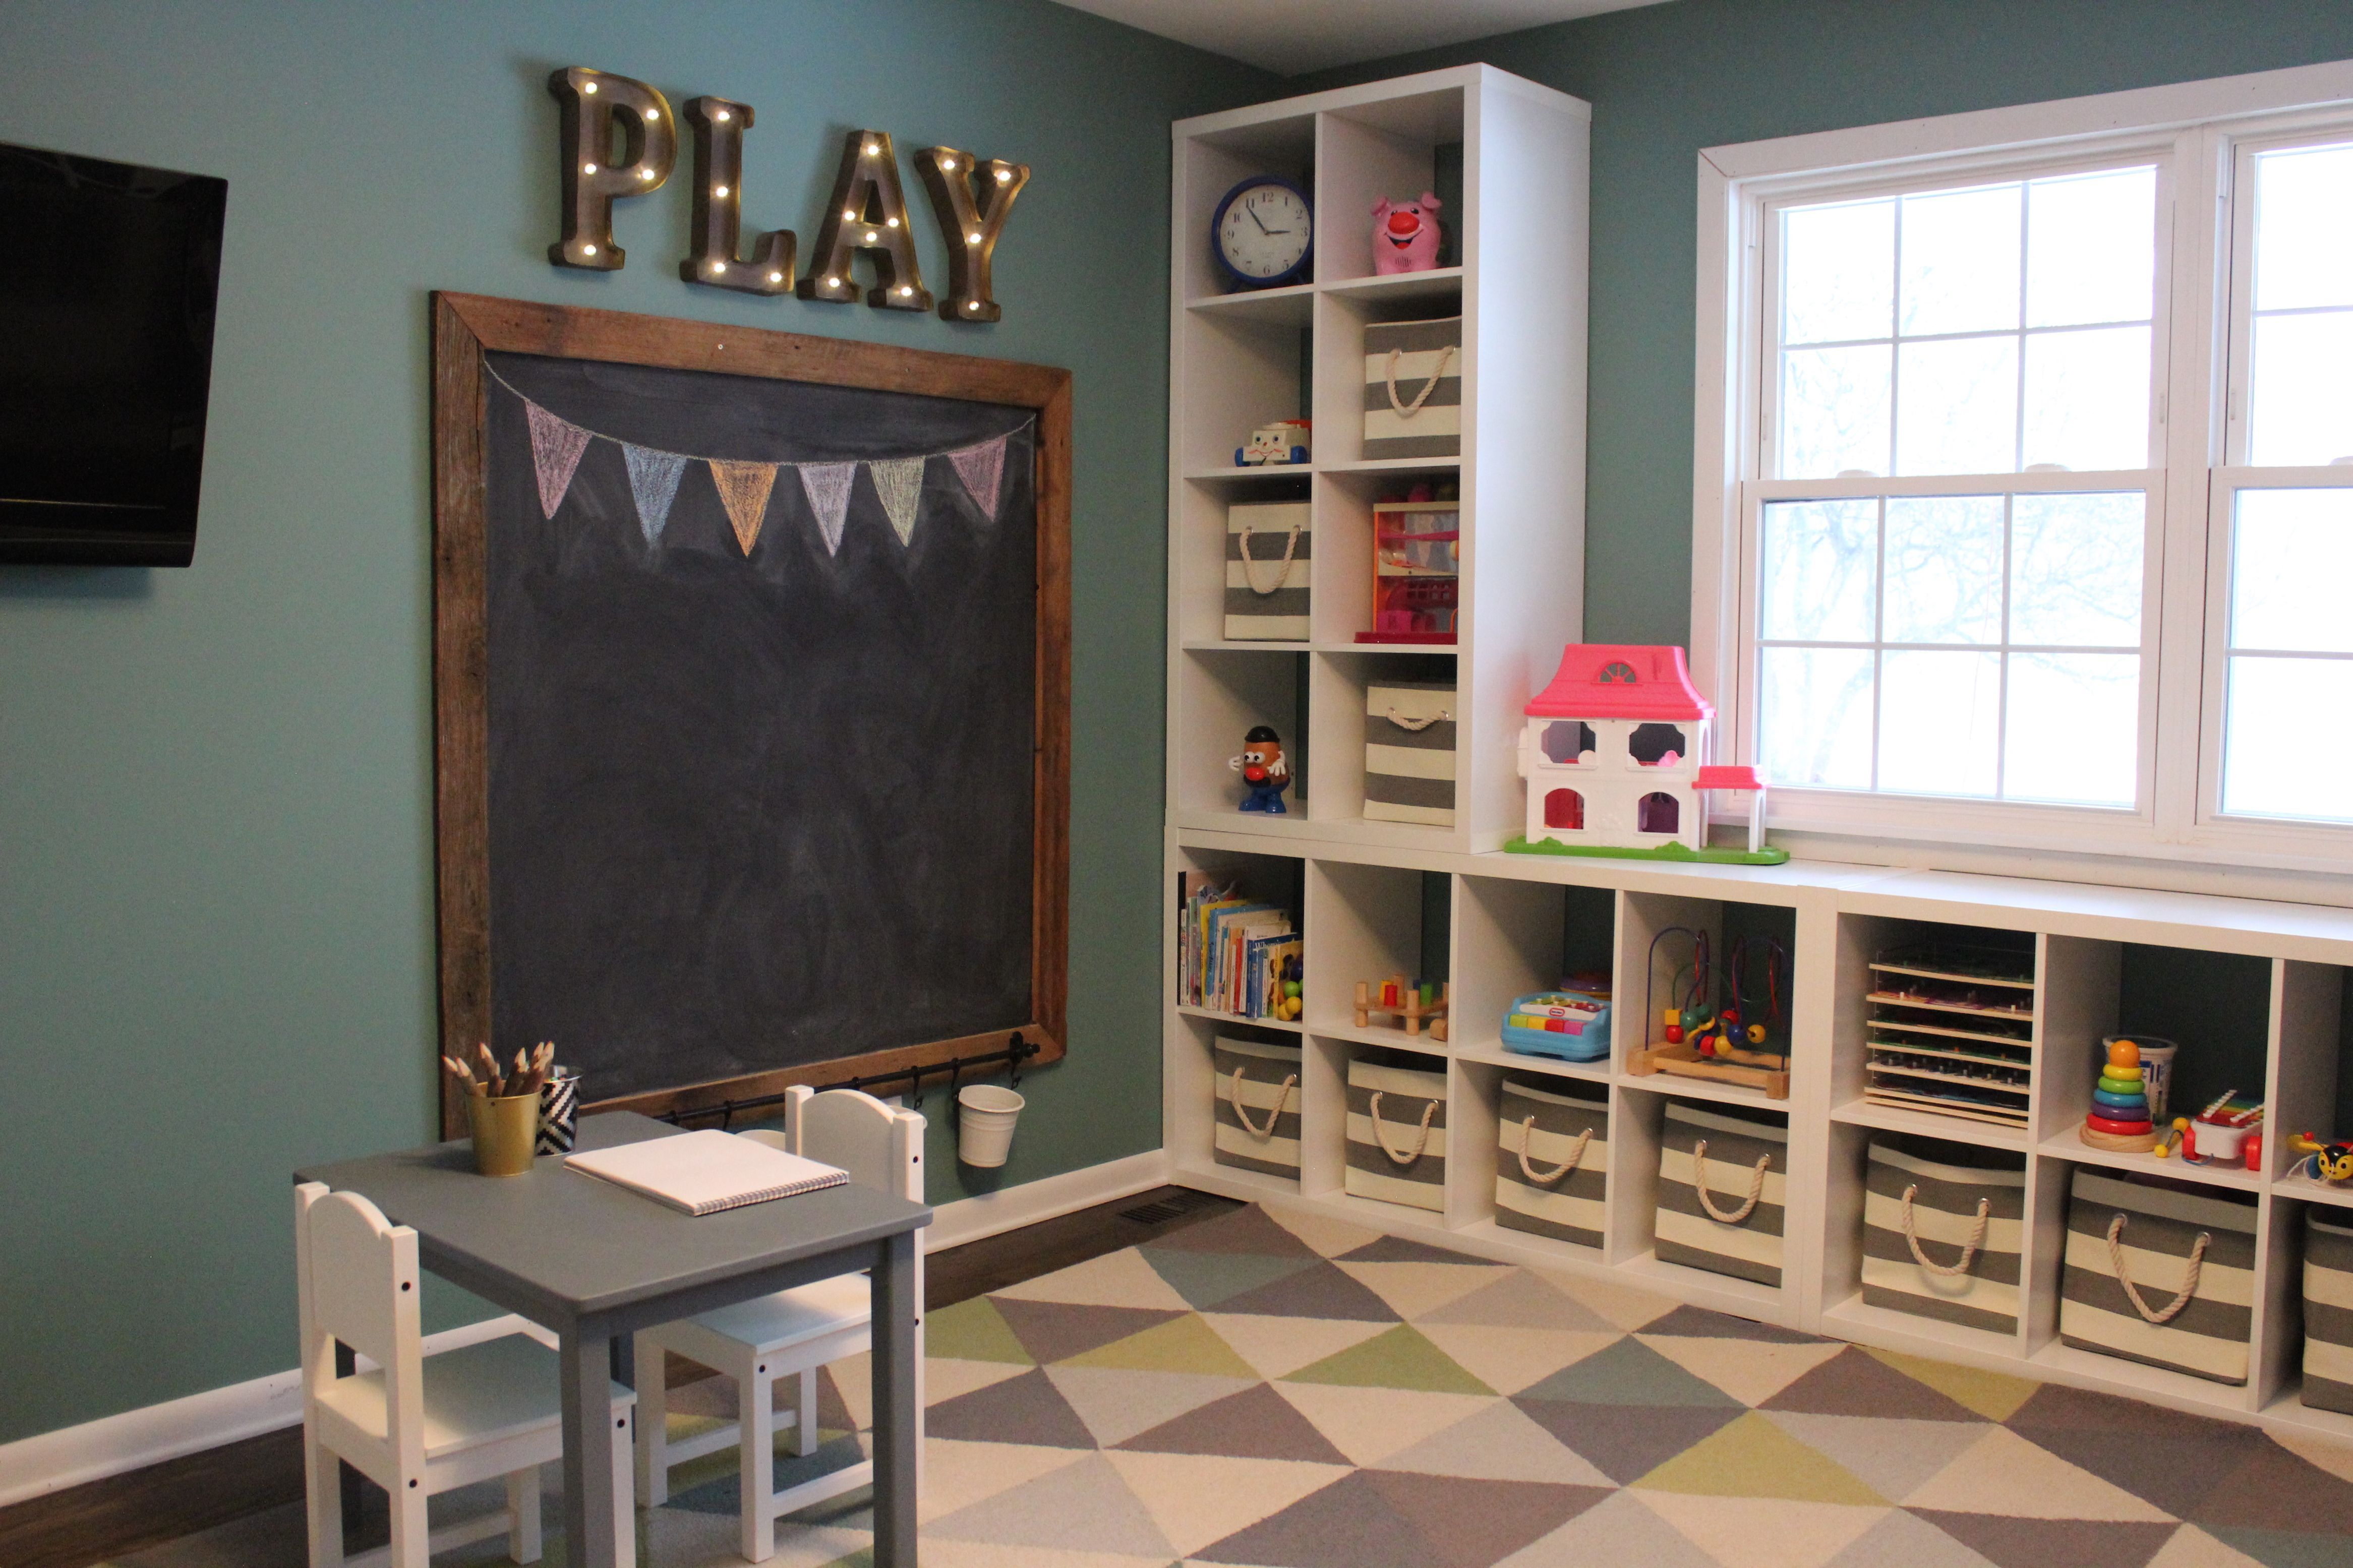 Playroom Chalkboard Marquee Letters Ikea Kallax Shelves Toy  # Bibliotheque Expedit Ikea Occasion